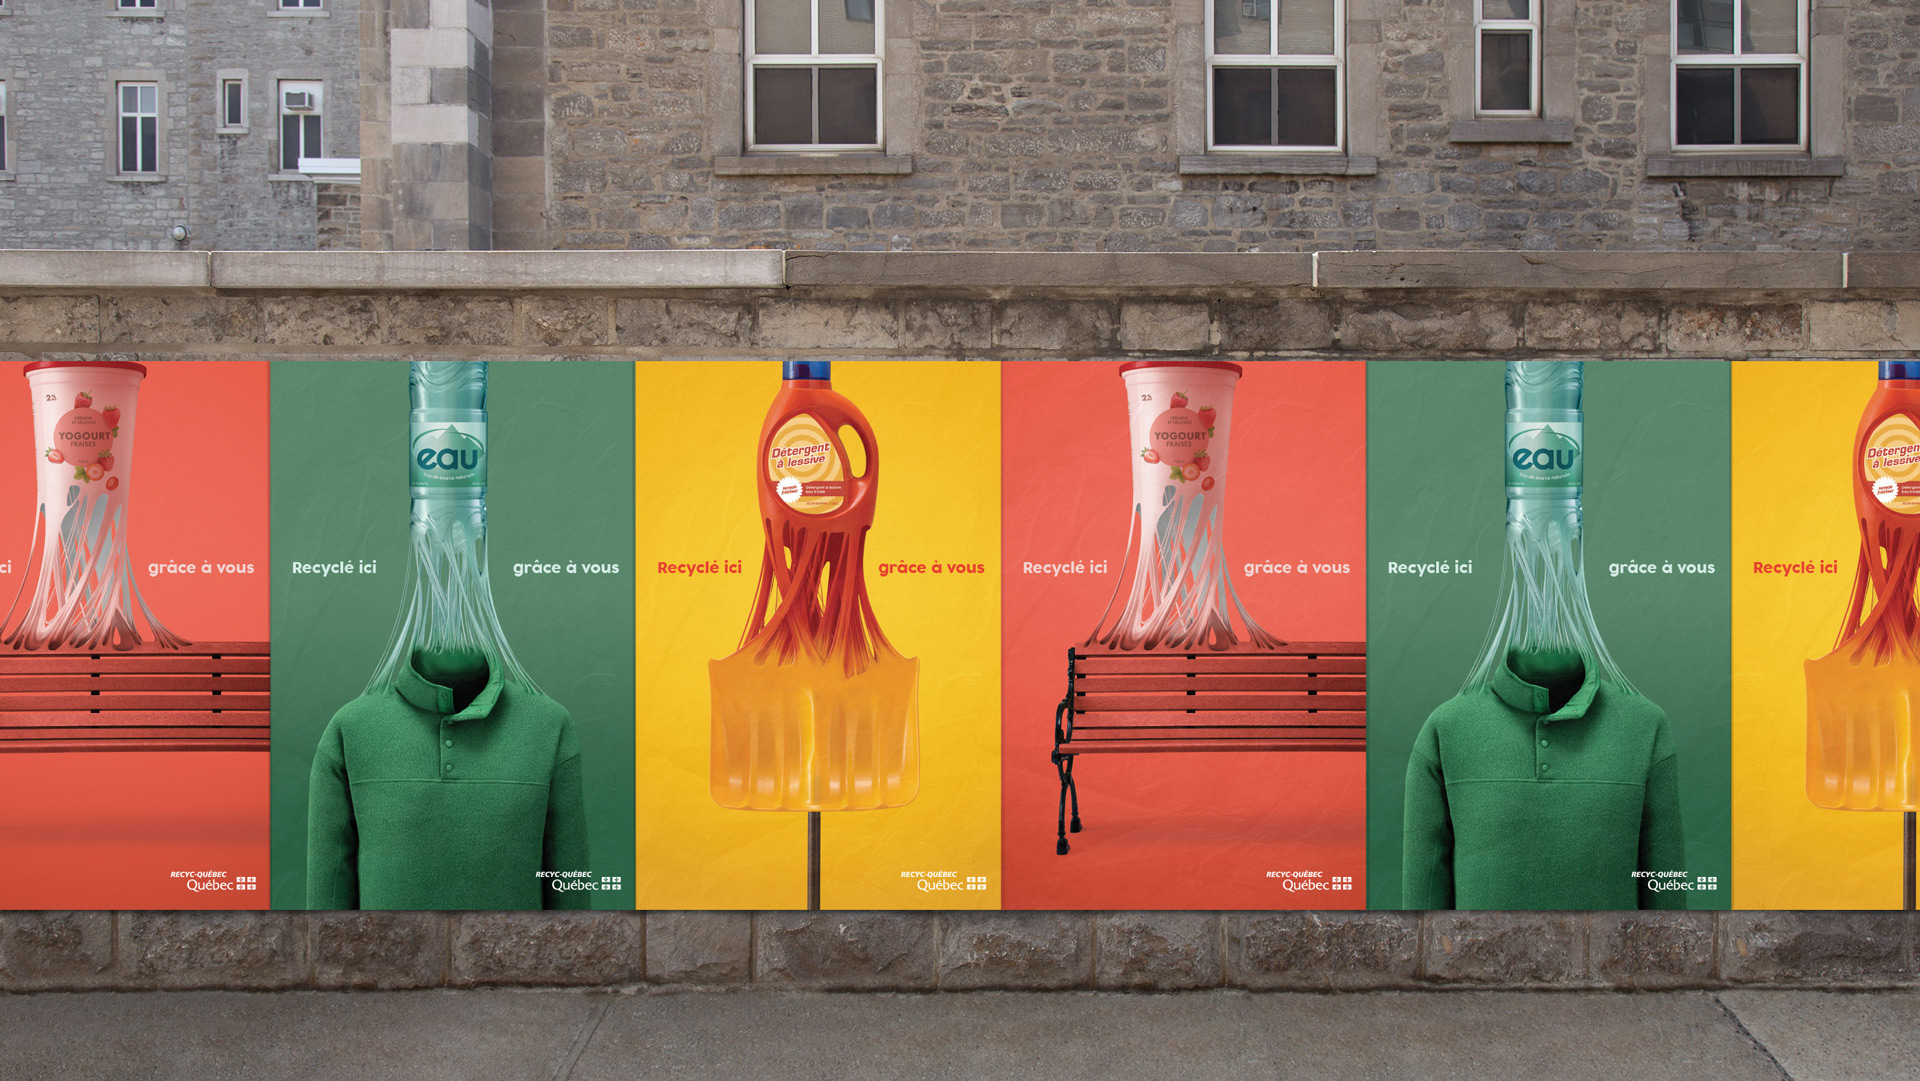 Mockup in street of Recyc-Quebec poster campaign by Mathieu Levesque